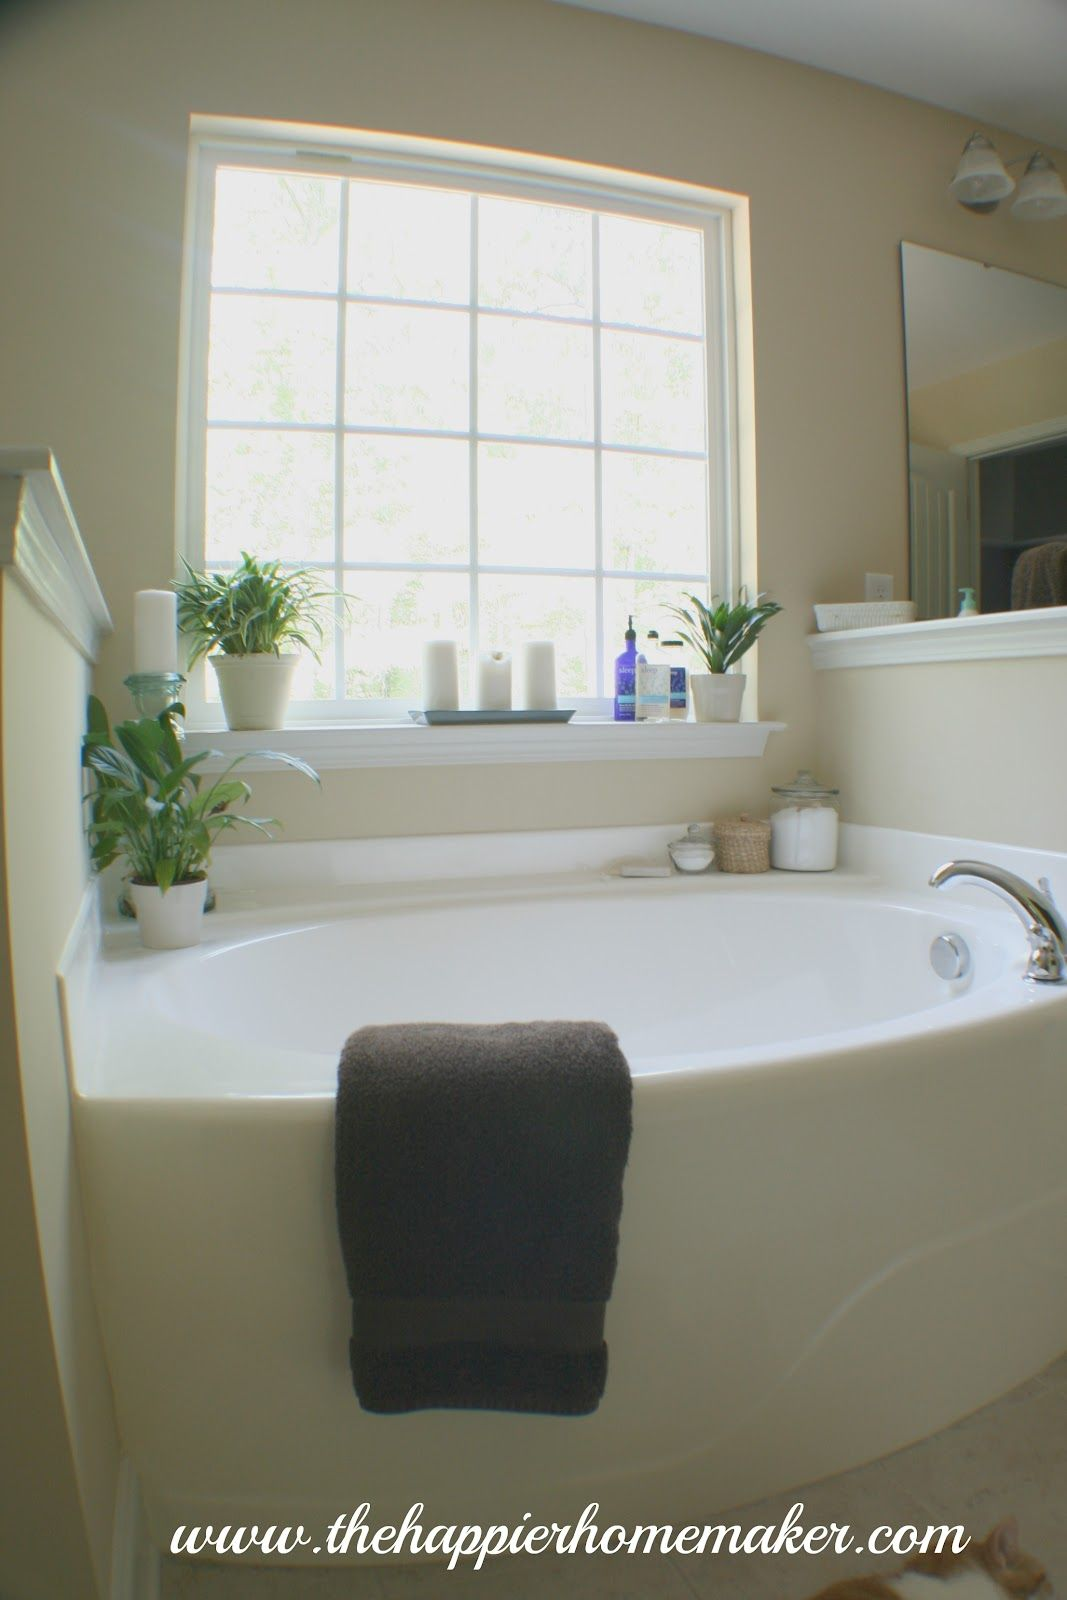 Decorating Around a Bathtub | home projects to do | Pinterest ...